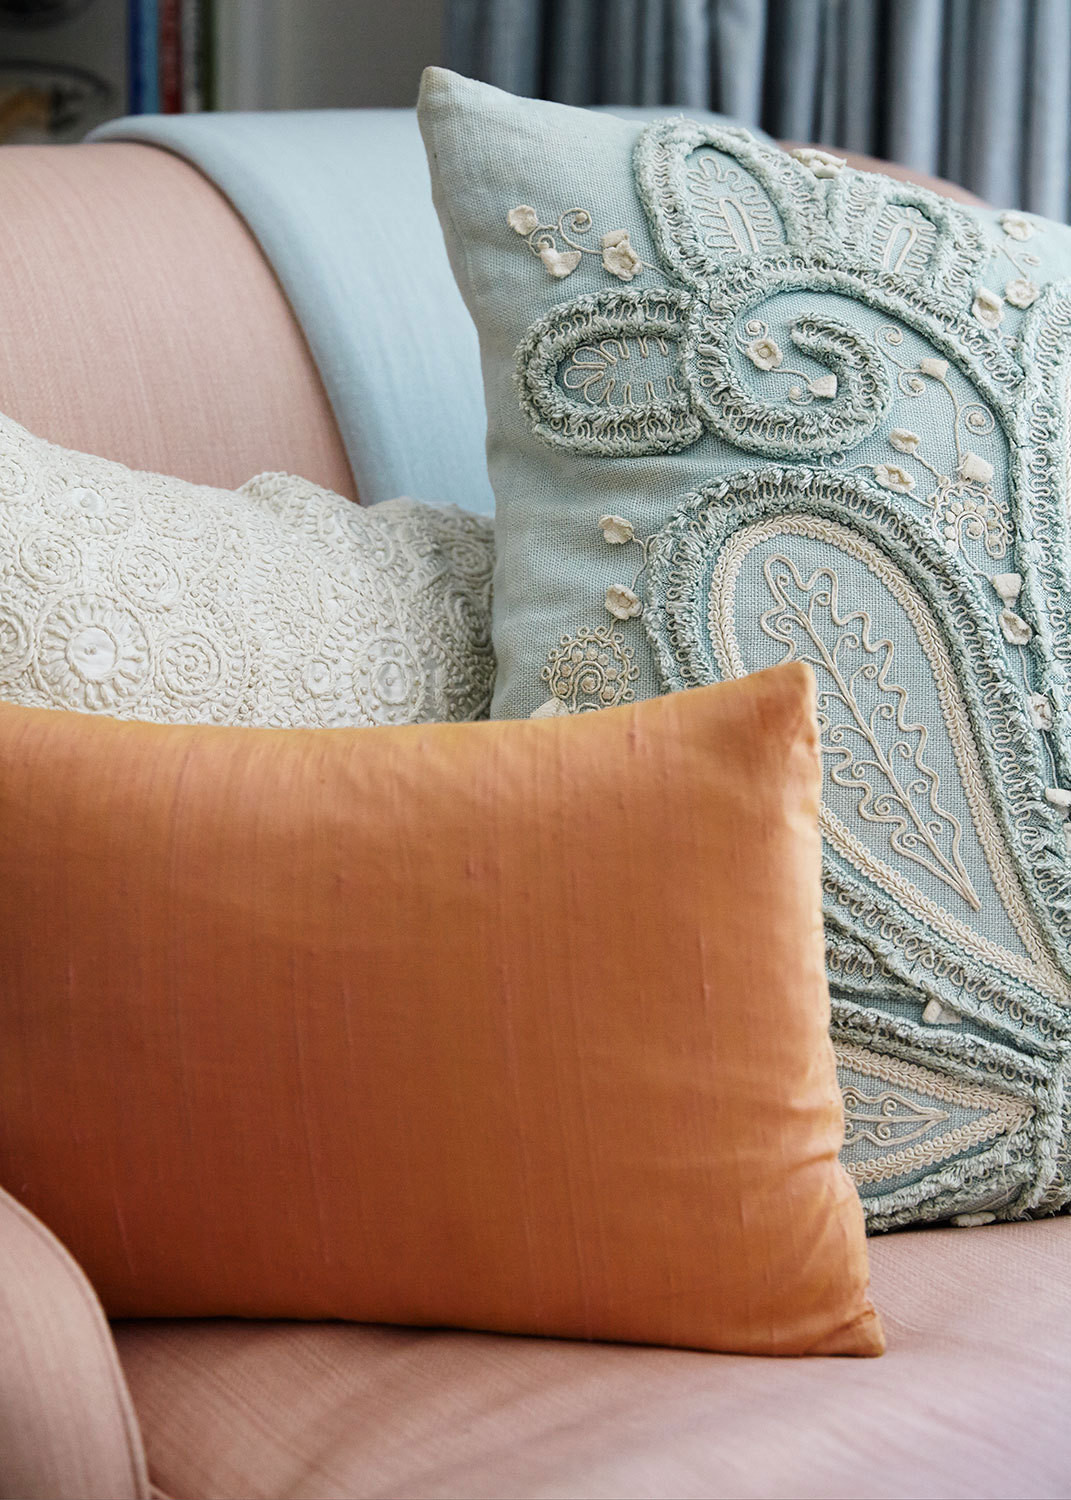 Decorative pillows on the master bedroom's chaise longue.